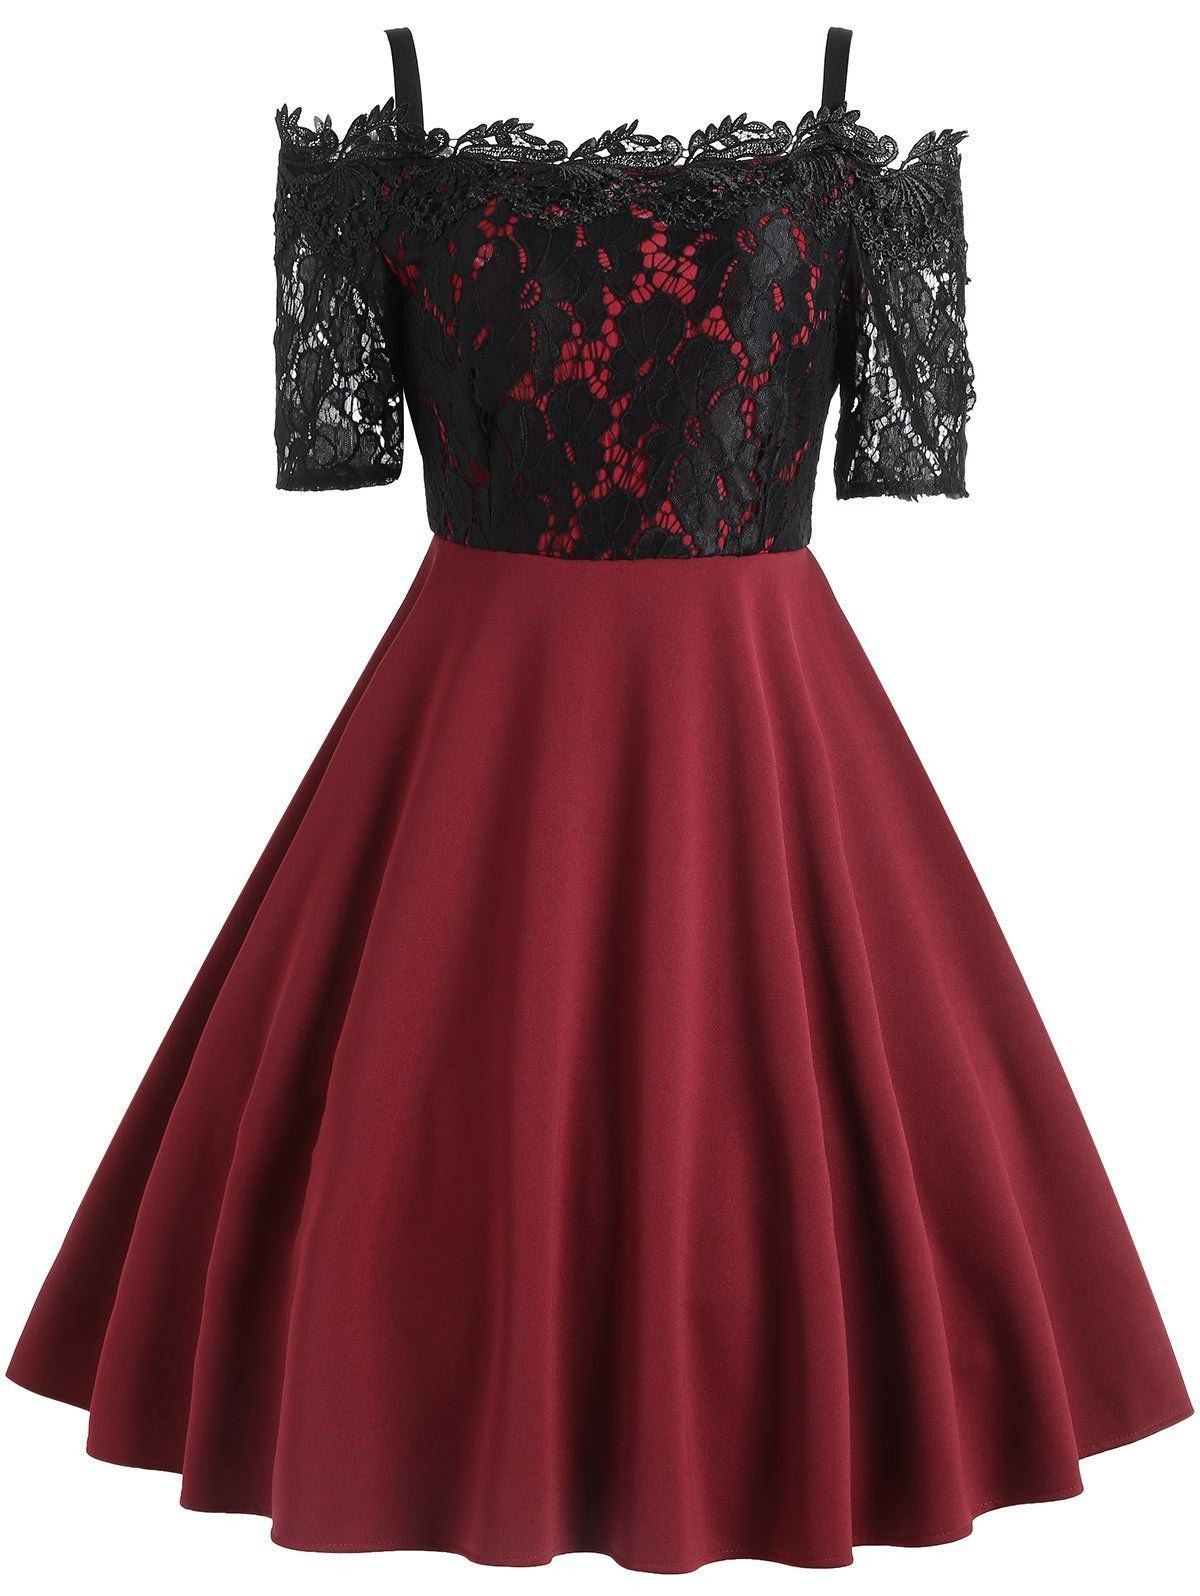 1950s Lace Patchwork Swing Dress In 2020 Lace Panel Dress Vintage Red Dress Red Floral Dress [ 1596 x 1200 Pixel ]